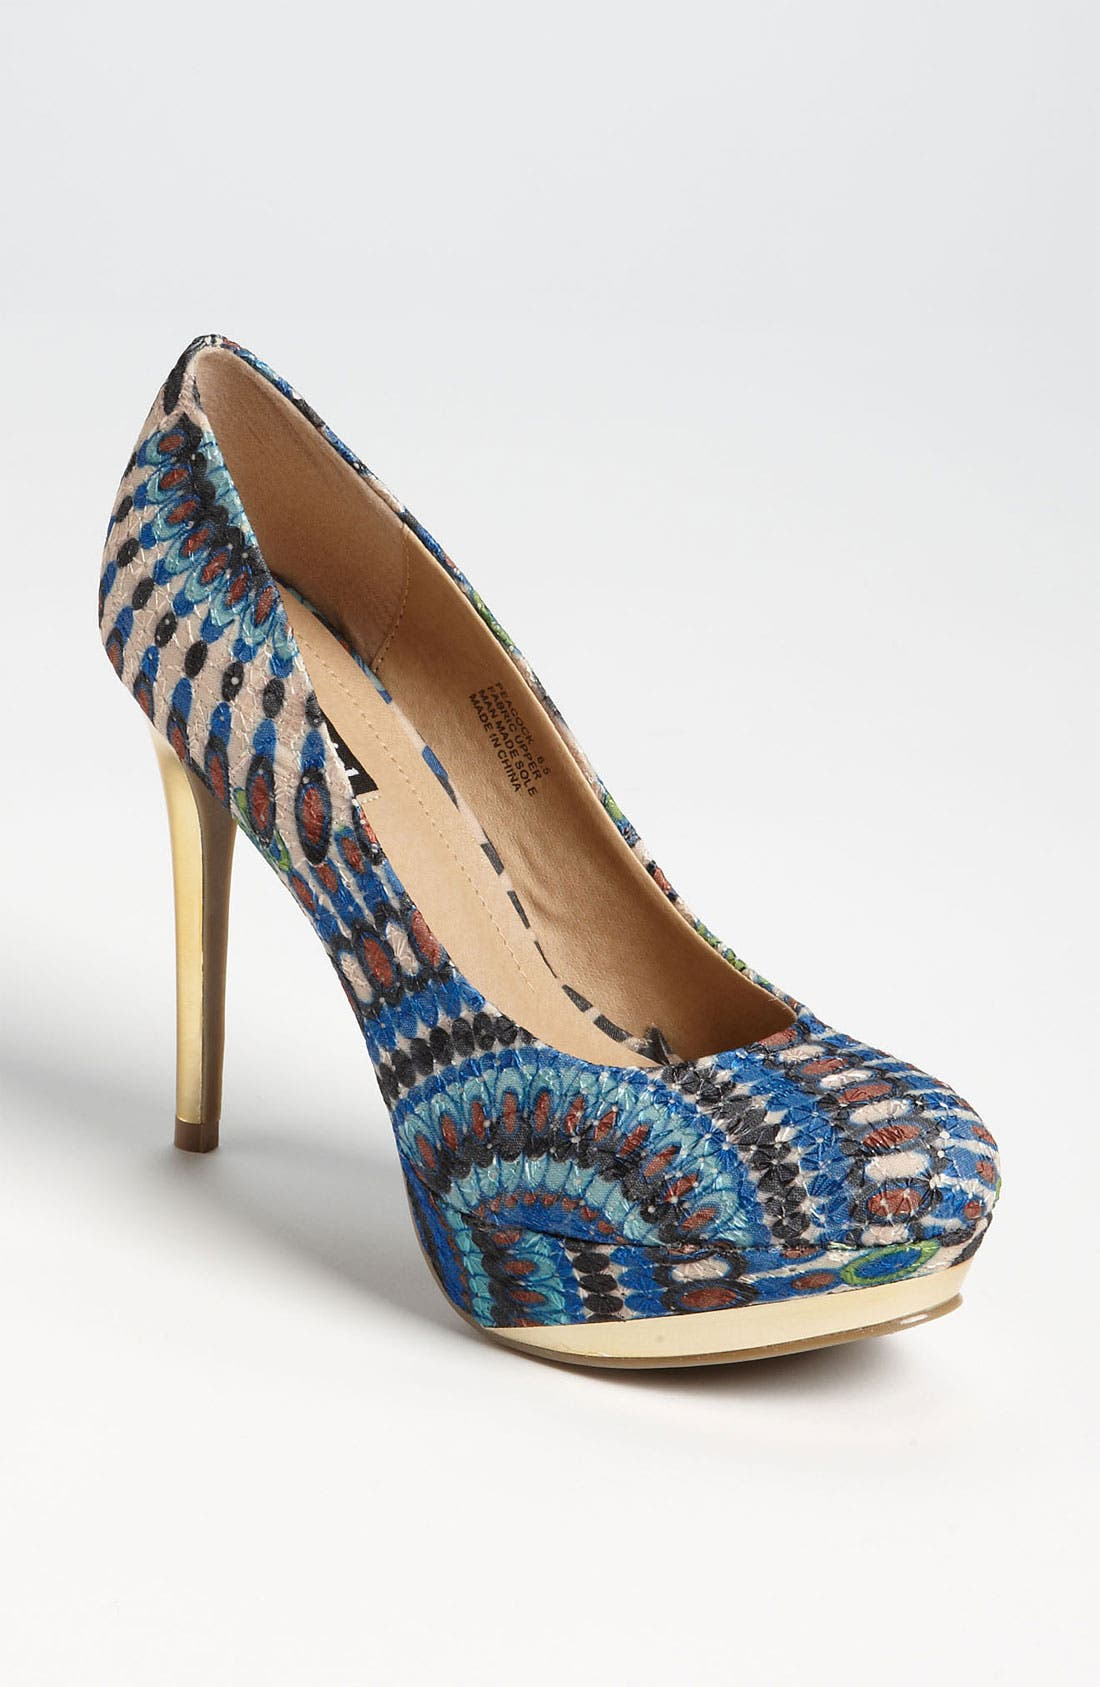 Main Image - ZiGi girl 'Peacock' Pump